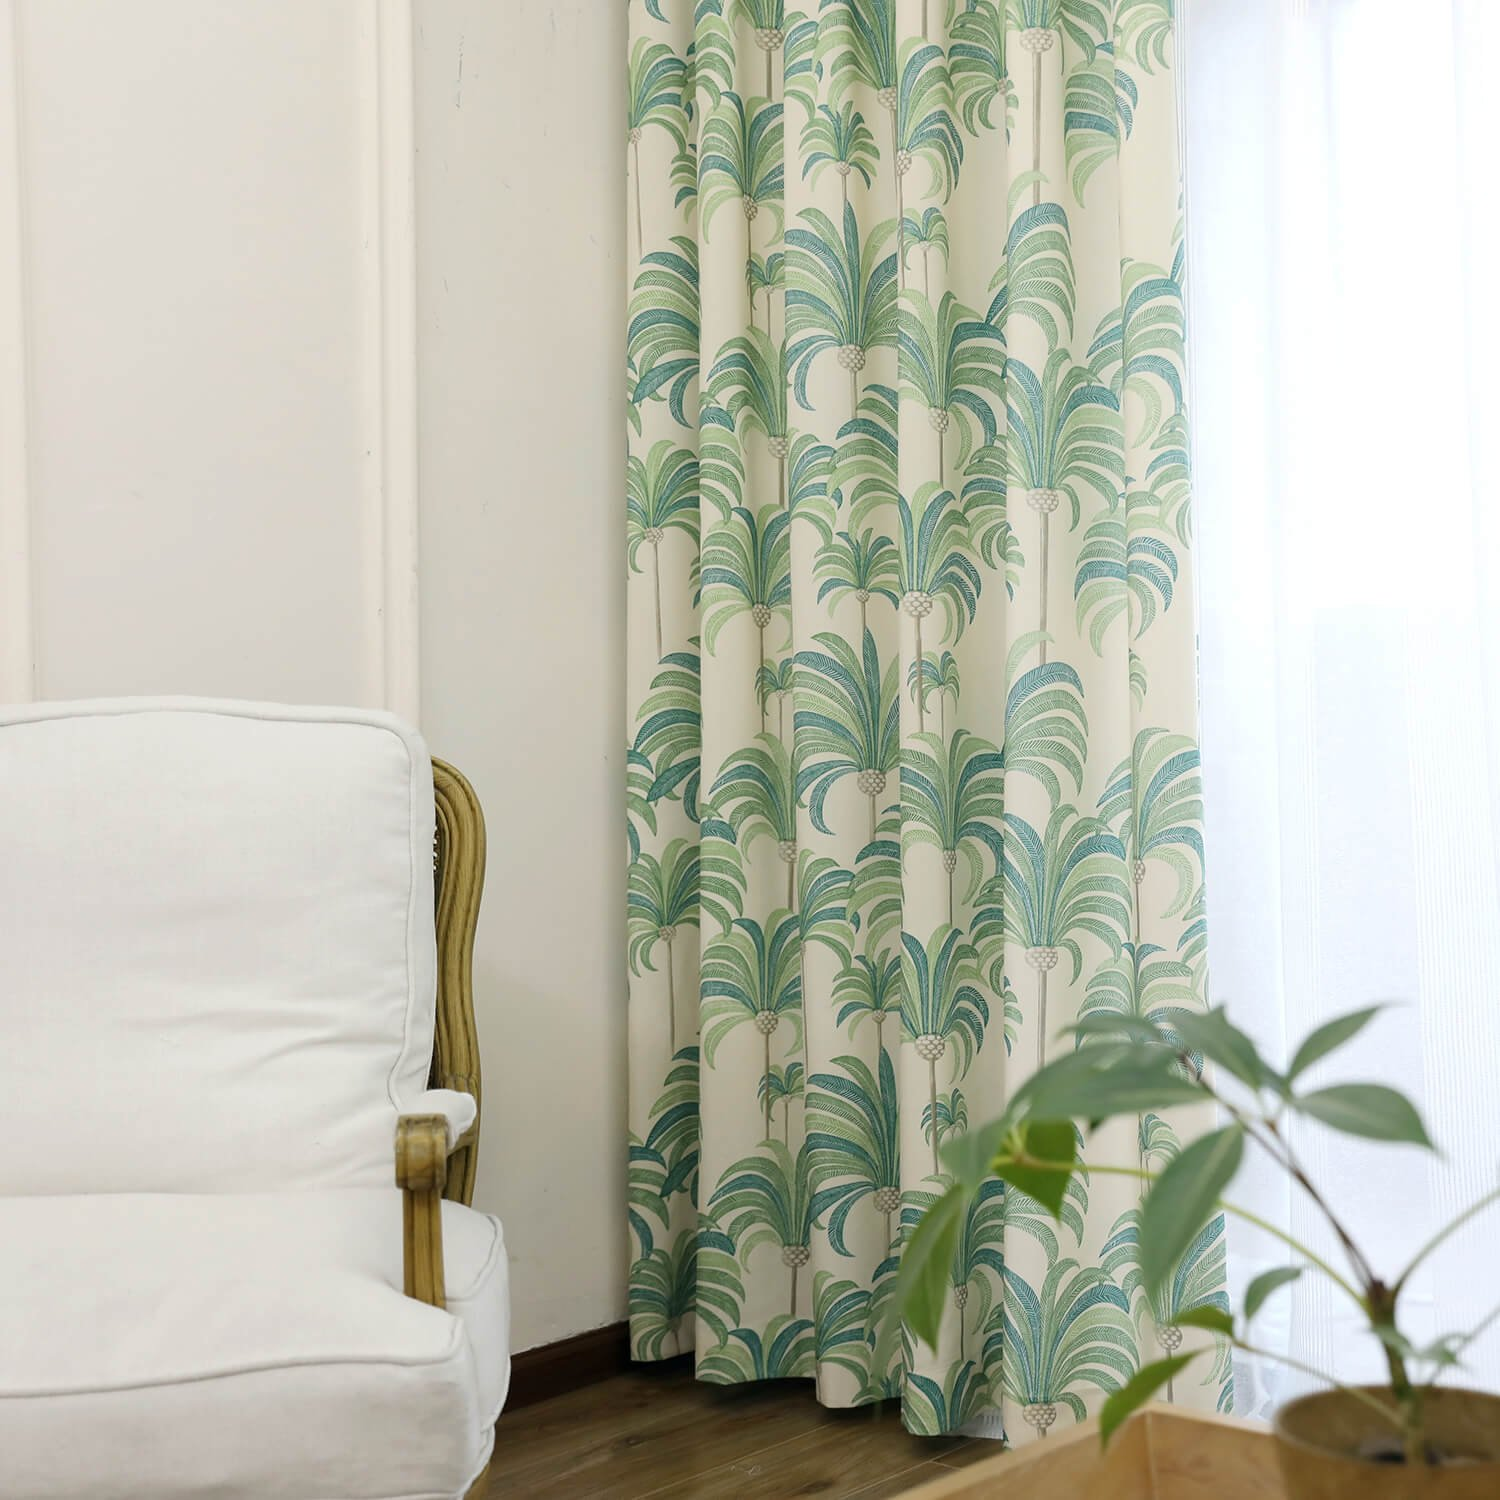 VOGOL Grommet Curtains, Hood Leaves Printed Window Panels Restaurant Curtain Drapes for Bedroom Hotel Living Room, 2 Panels, W52 x L84 inch, Green